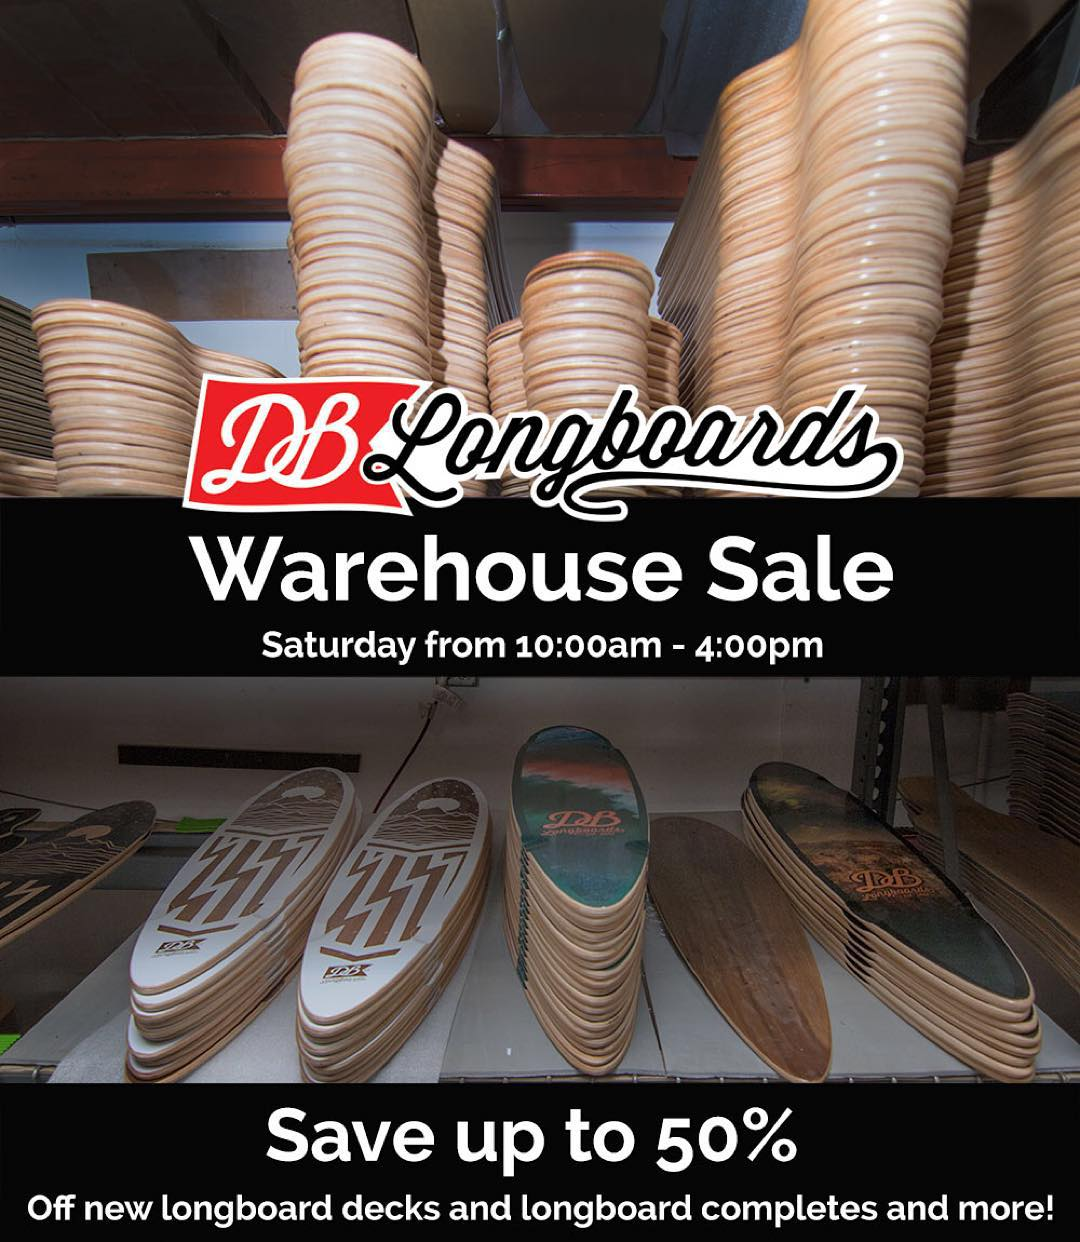 Come visit for our DB Warehouse Holiday Sale on December 5th, 2015! Save up to 50% off on new and used longboards, skate decks, bearings, wheels, grip tape, apparel and more. It goes down this Saturday from 10am-4pm. #longboard #longboarding...